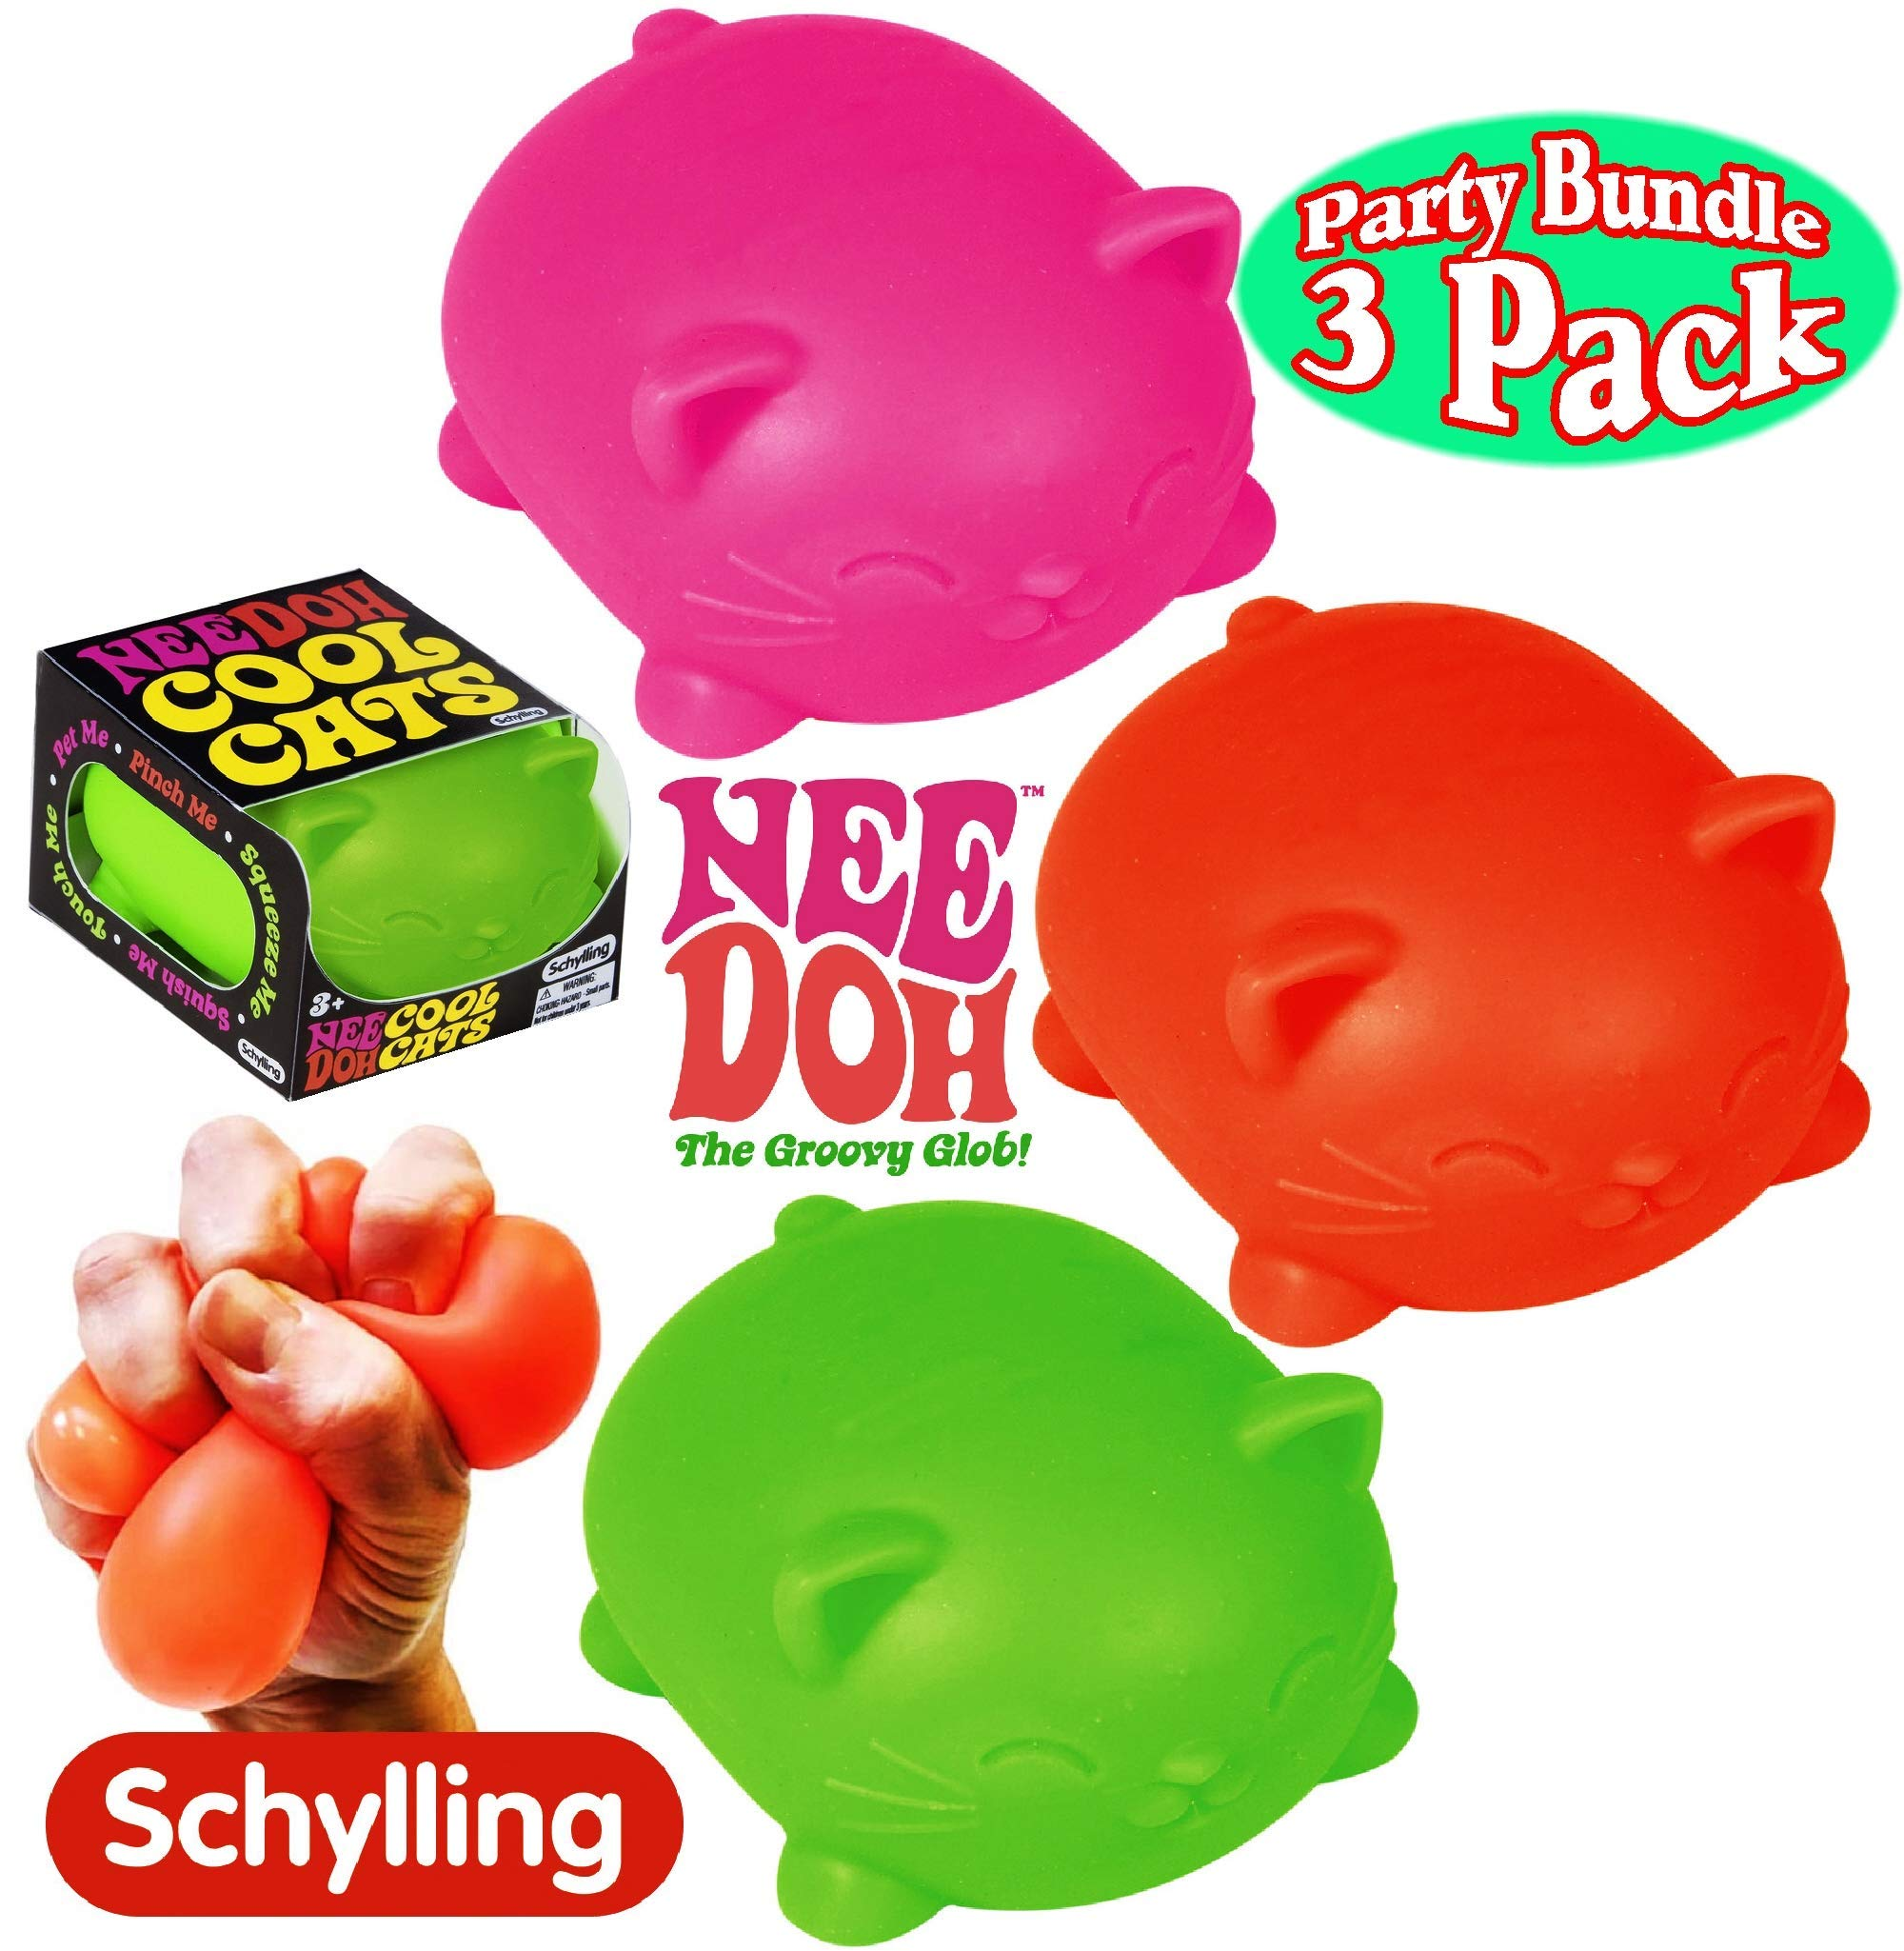 Schylling NeeDoh Cool Cats The Groovy Glob! Squishy, Squeezy, Stretchy Stress Balls Green, Orange & Pink Complete Gift Set Party Bundle - 3 Pack